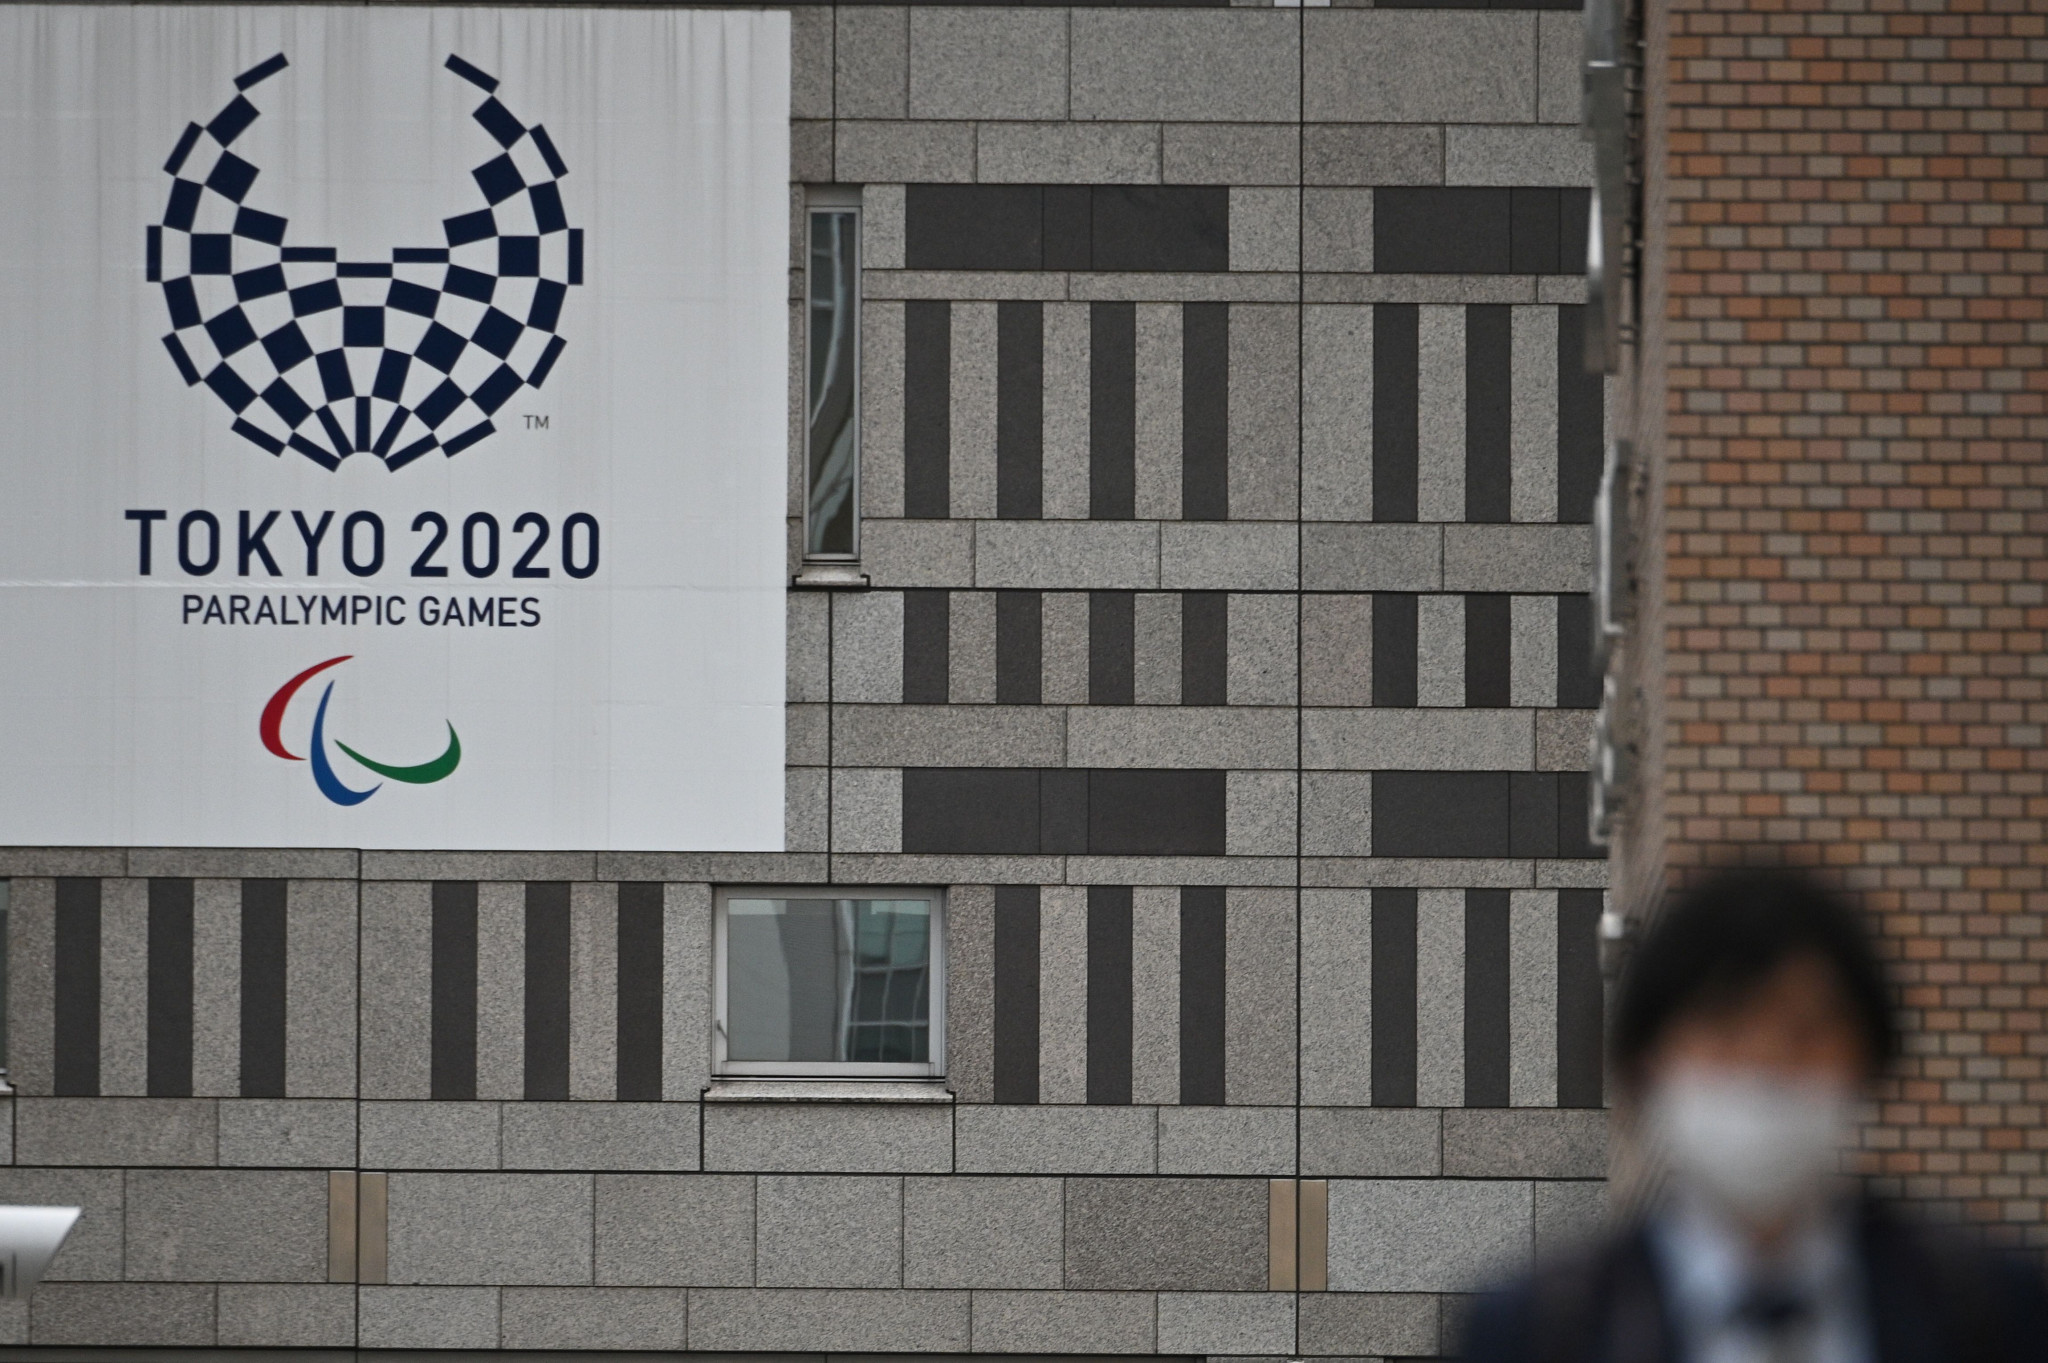 IPC says Para sport Championships willing to be flexible to find dates for Tokyo 2020 Paralympics